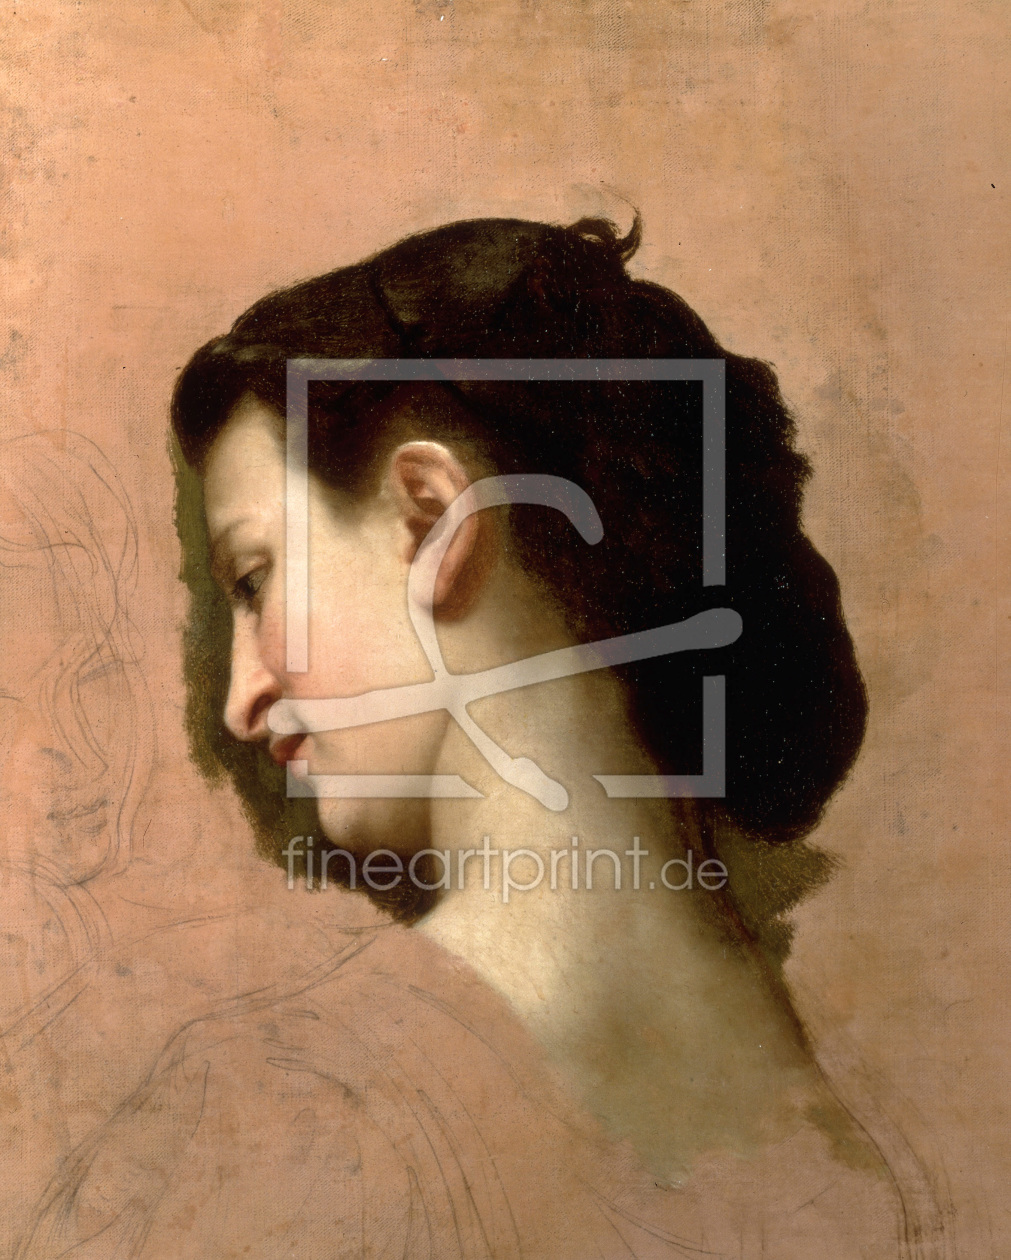 Bild-Nr.: 30008733 W.Bouguereau, Sketch of a Young Girl. erstellt von Bouguereau, William Adolphe